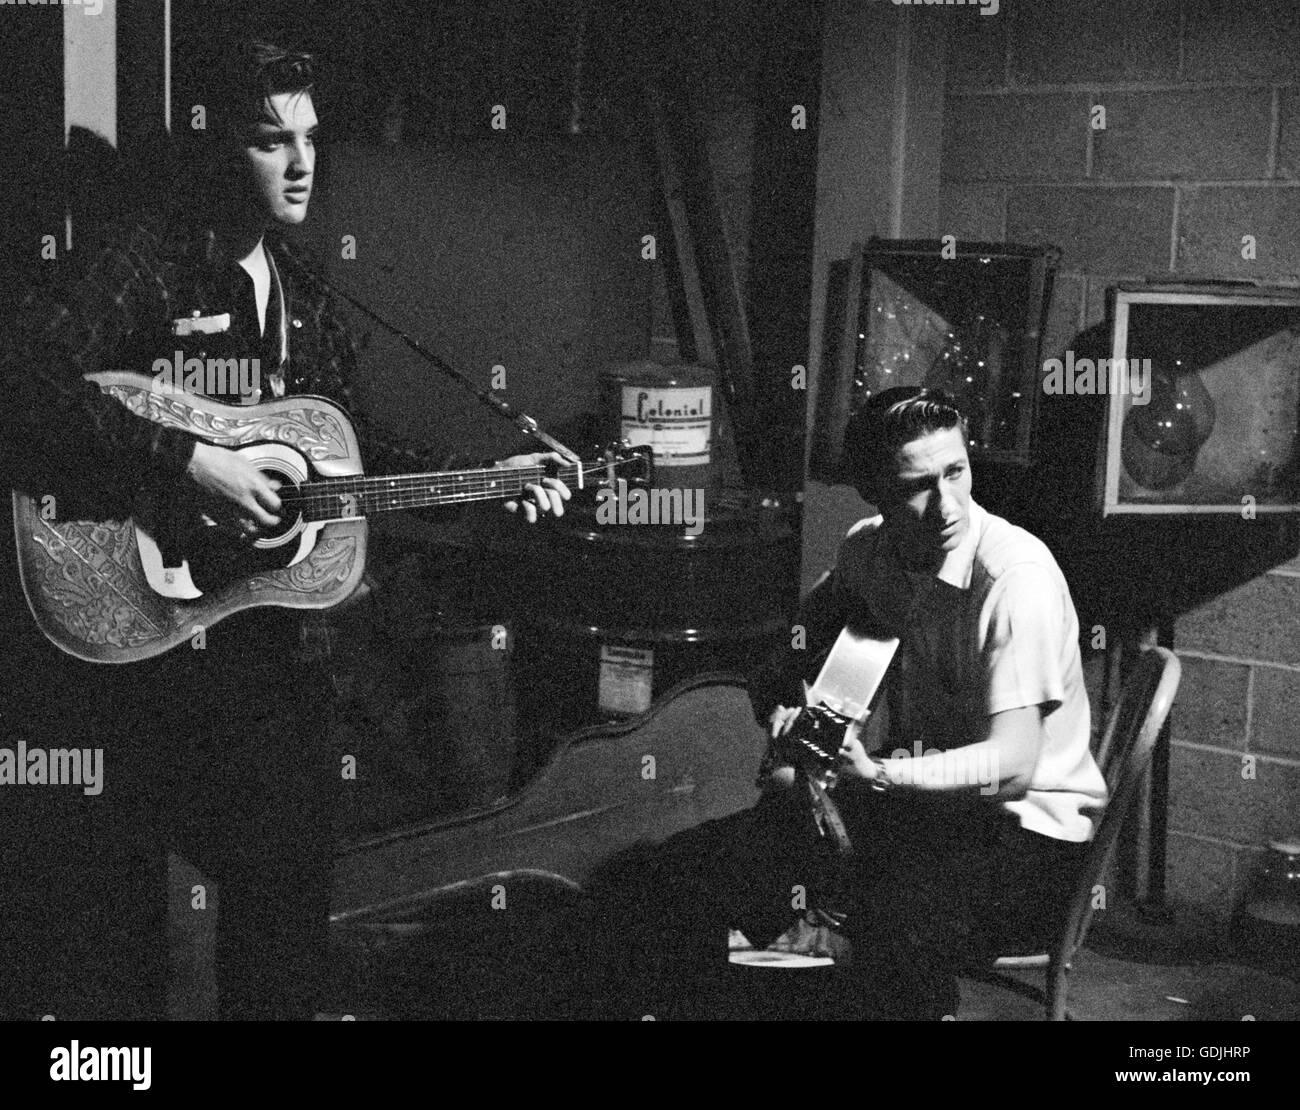 Elvis Presley and Scotty Moore, between performances, backstage at the University of Dayton Fieldhouse, May 27, Stock Photo